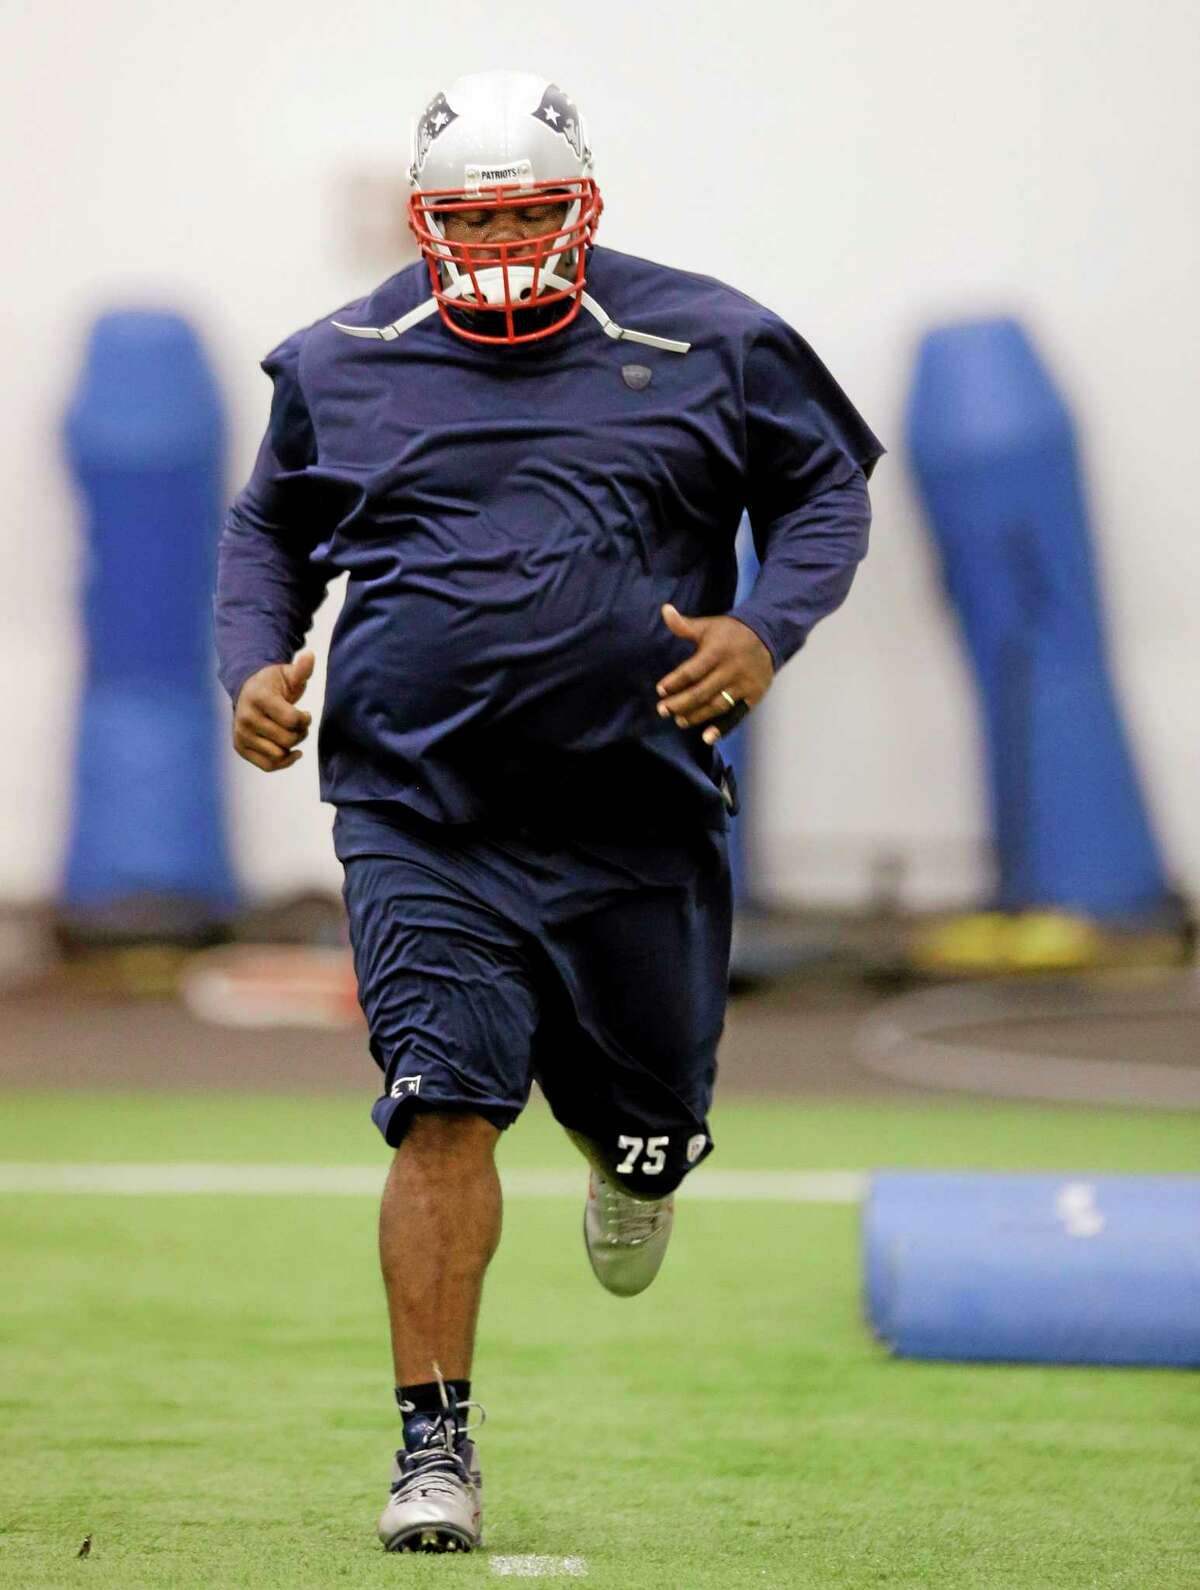 New England Patriots defensive lineman Vince Wilfork runs during minicamp at the team's indoor training facility Tuesday in Foxborough, Mass.